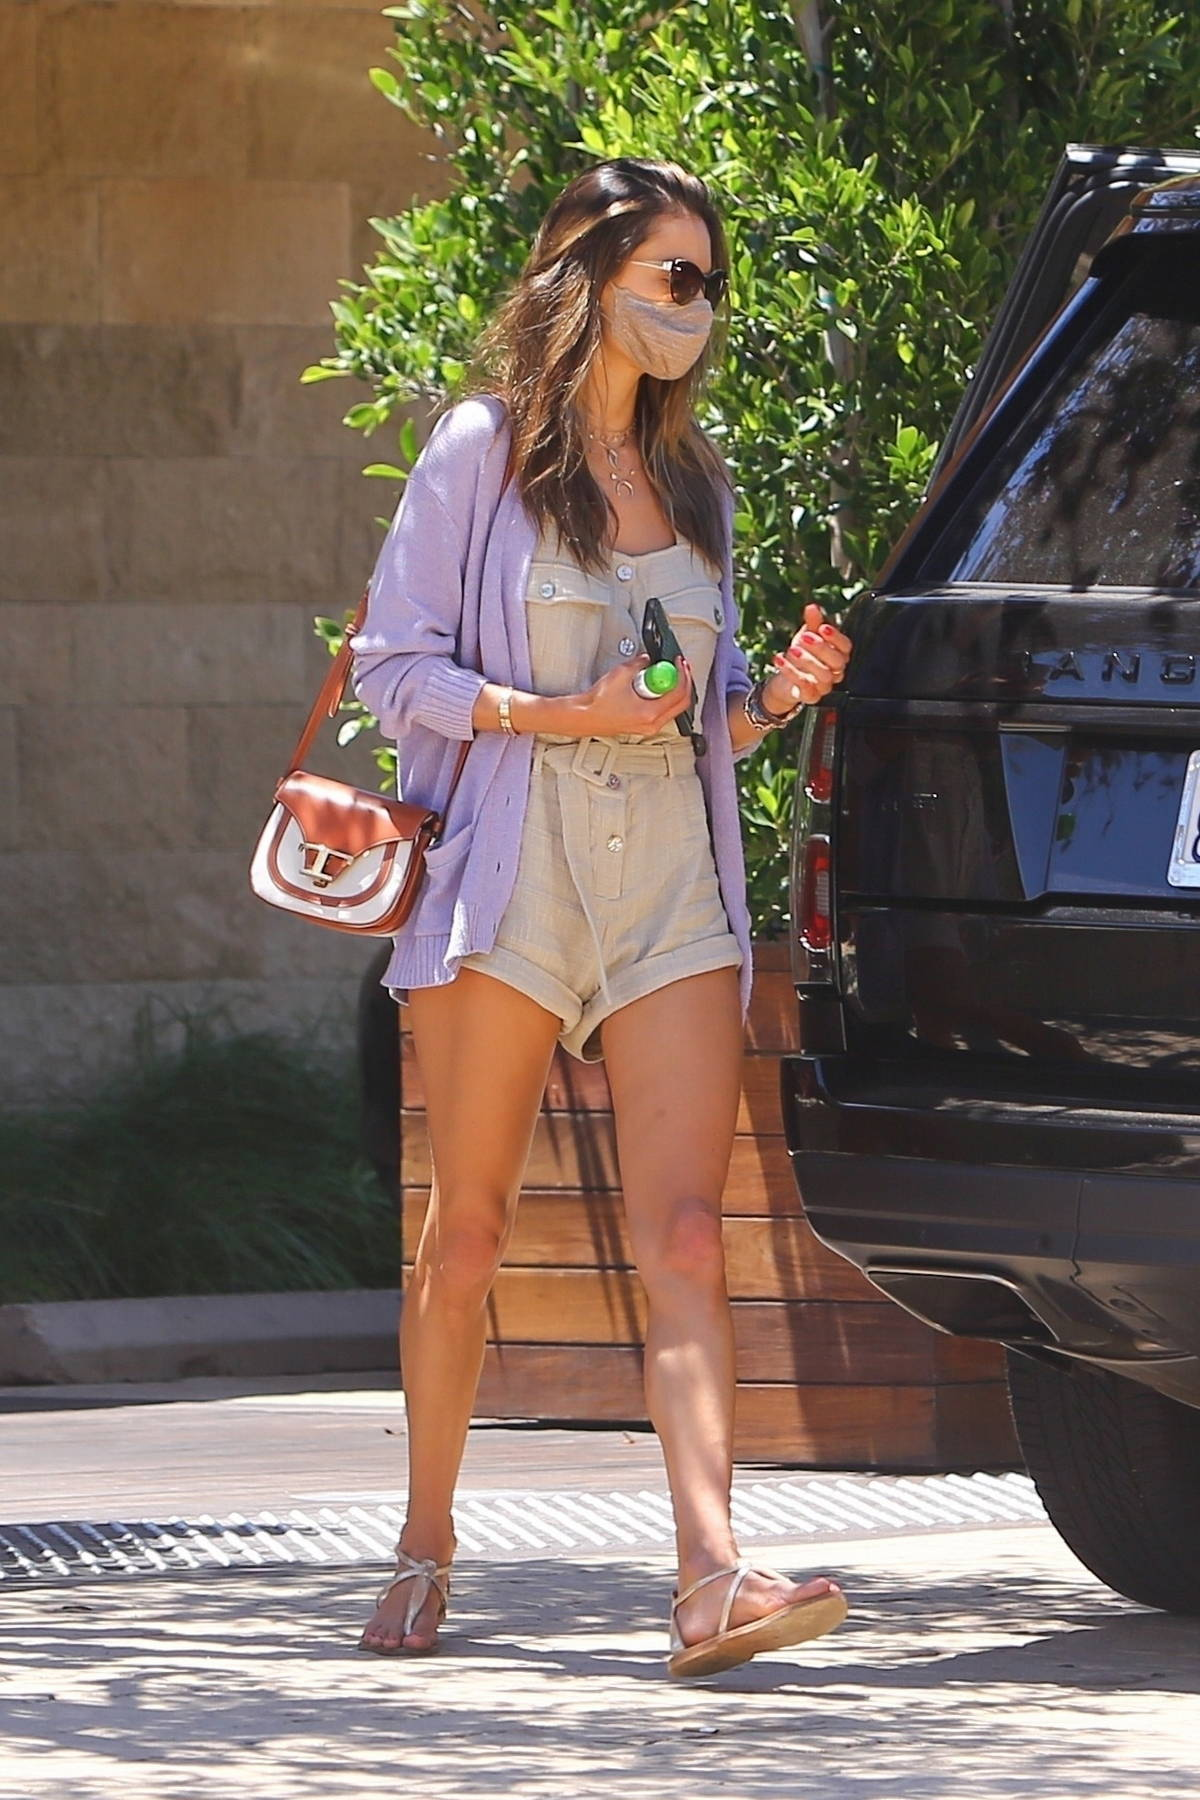 Alessandra Ambrosio displays her mile-long legs in a beige romper during a lunch outing at SoHo House in Malibu, California